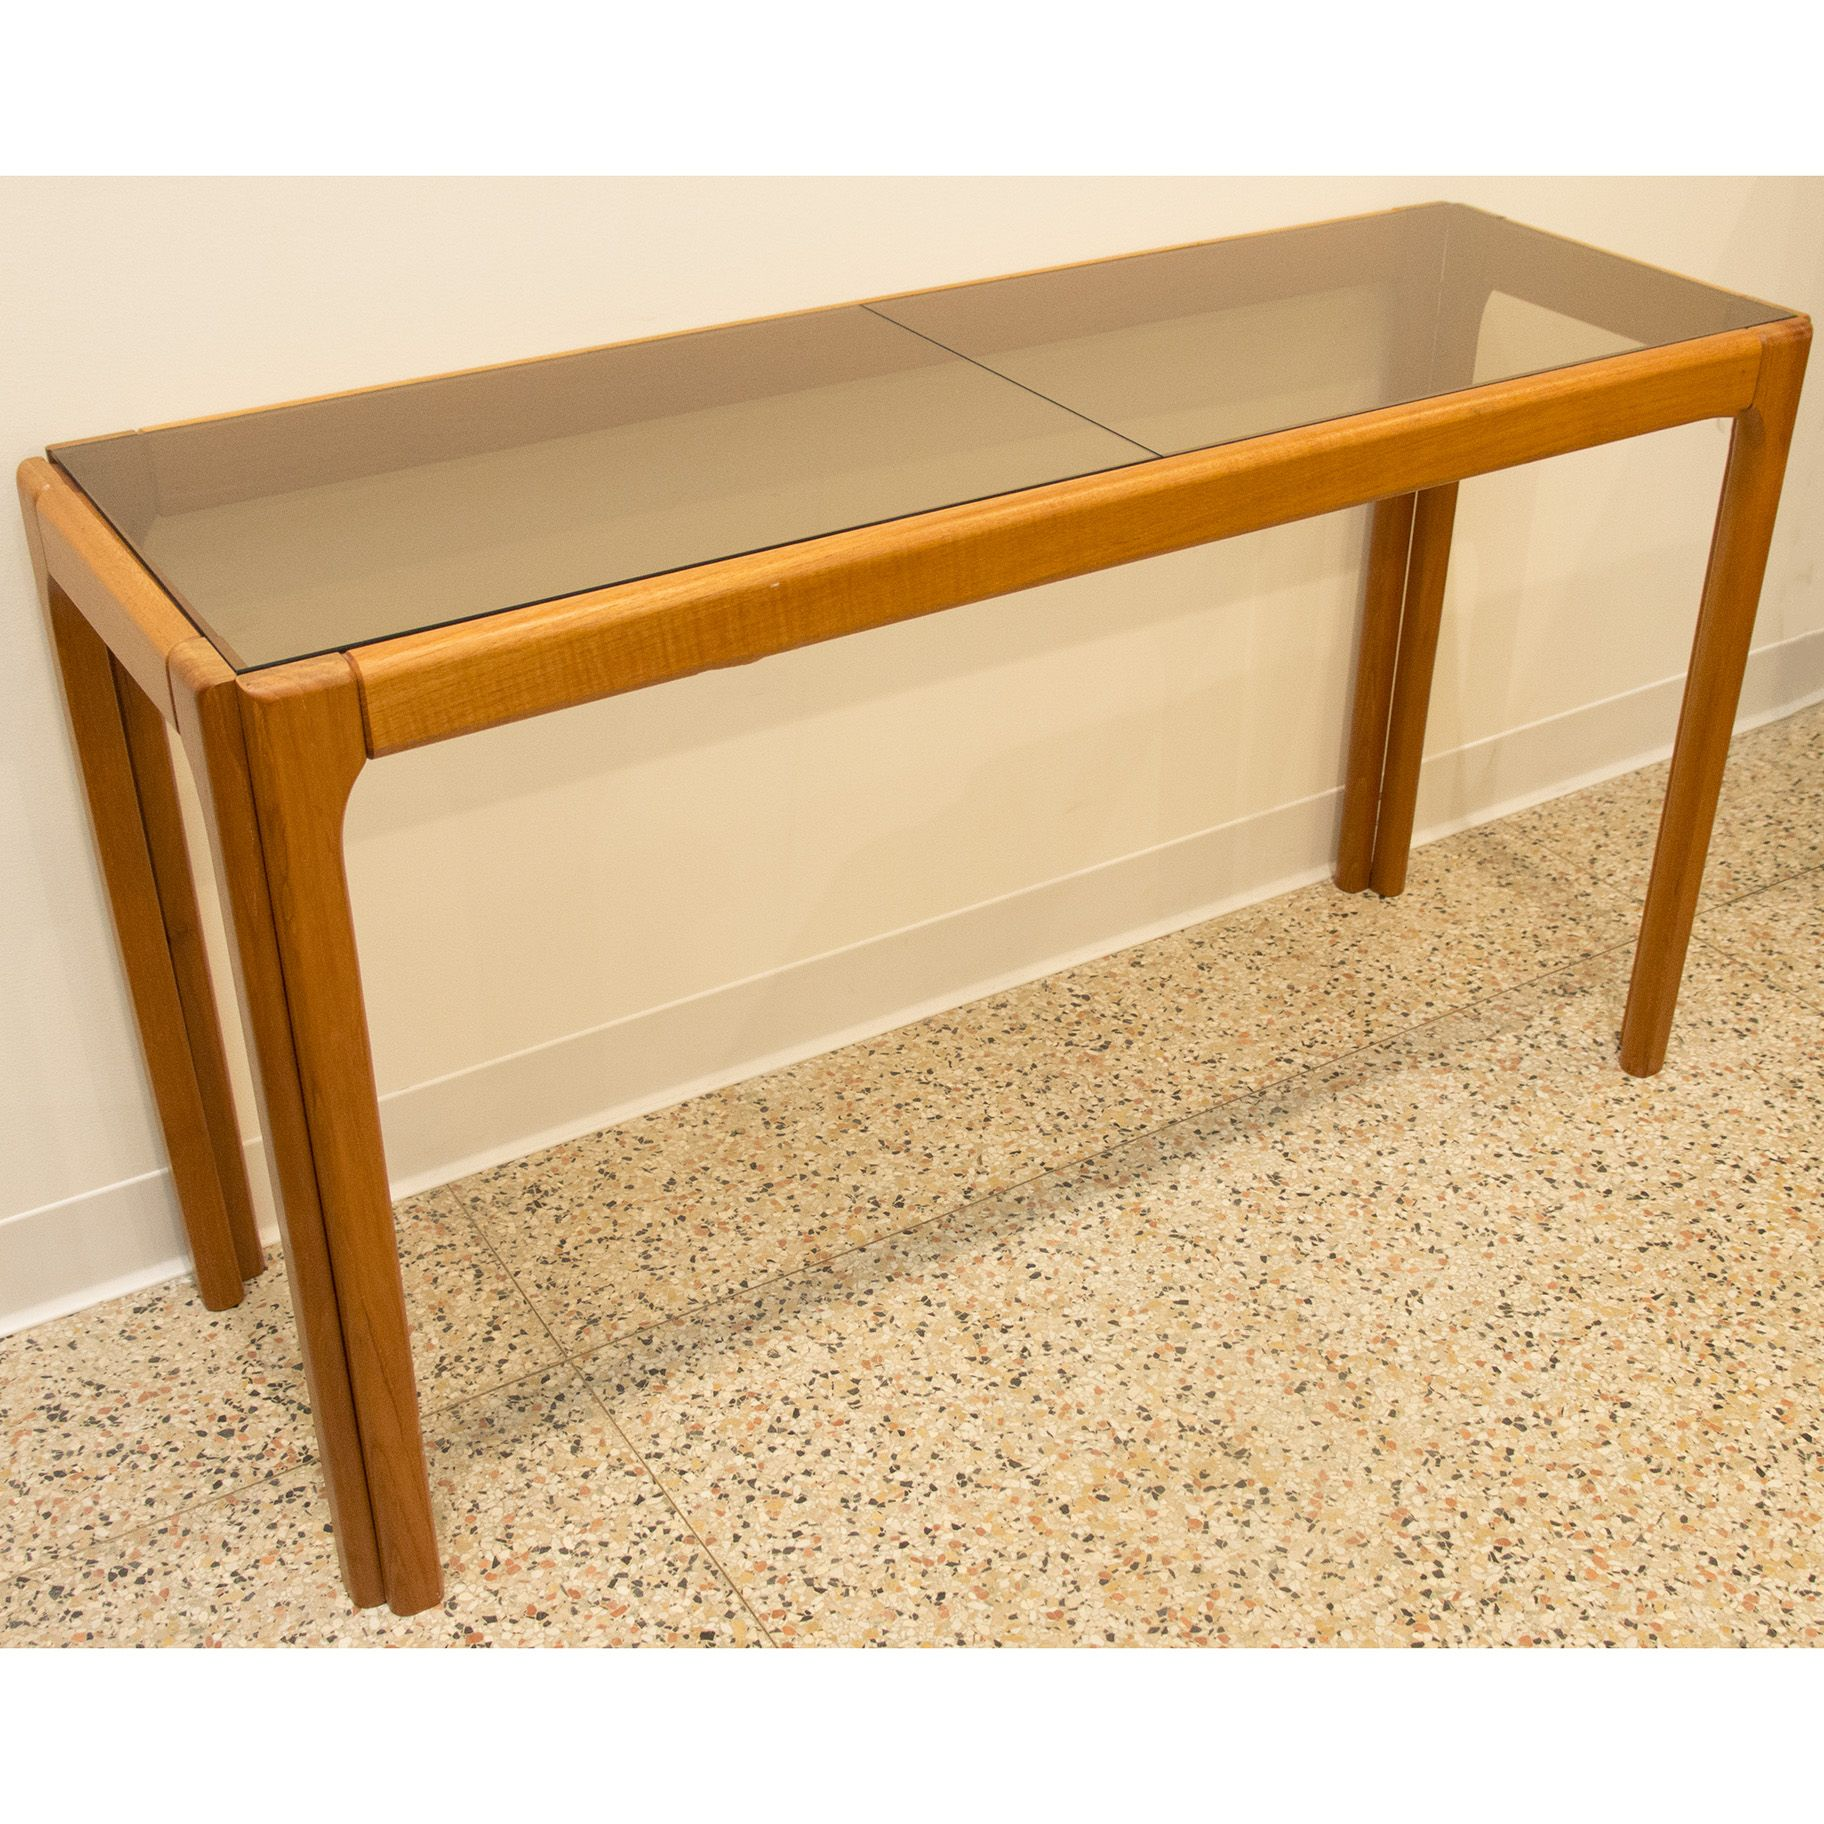 Danish modern teak console table with smoked glass top mid danish modern teak console table with smoked glass top geotapseo Image collections